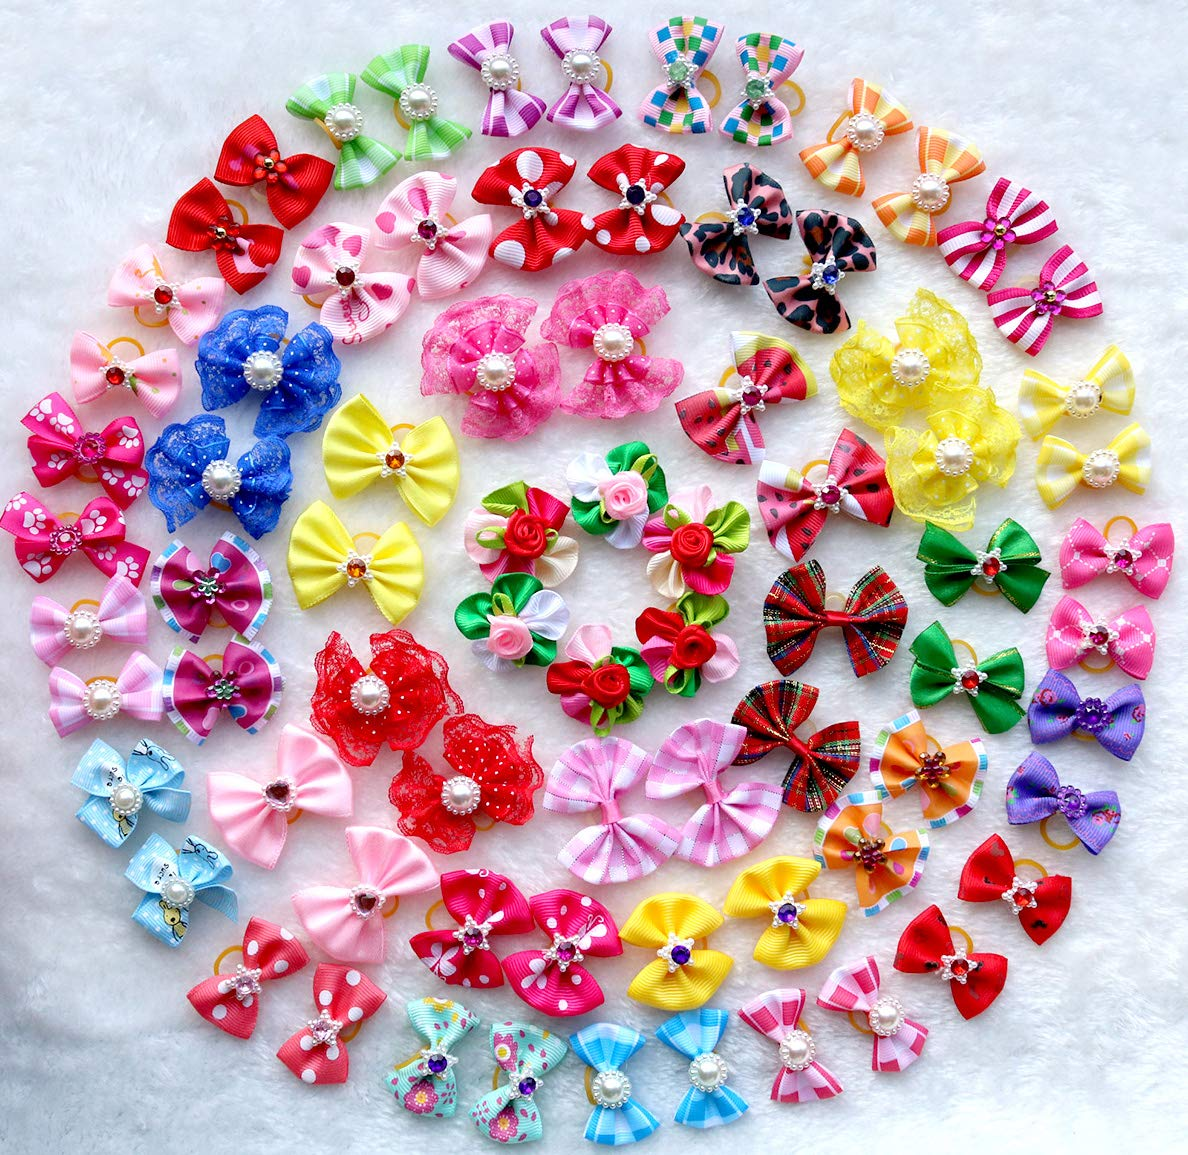 50pcs/pack Cute New Dog Hair Bows Pairs Rhinestone Pearls Flowers Topknot Mix Styles Dog Bows Pet Grooming Products Mix Colors Pet Hair Bows Topknot Rubber Bands by yagopet